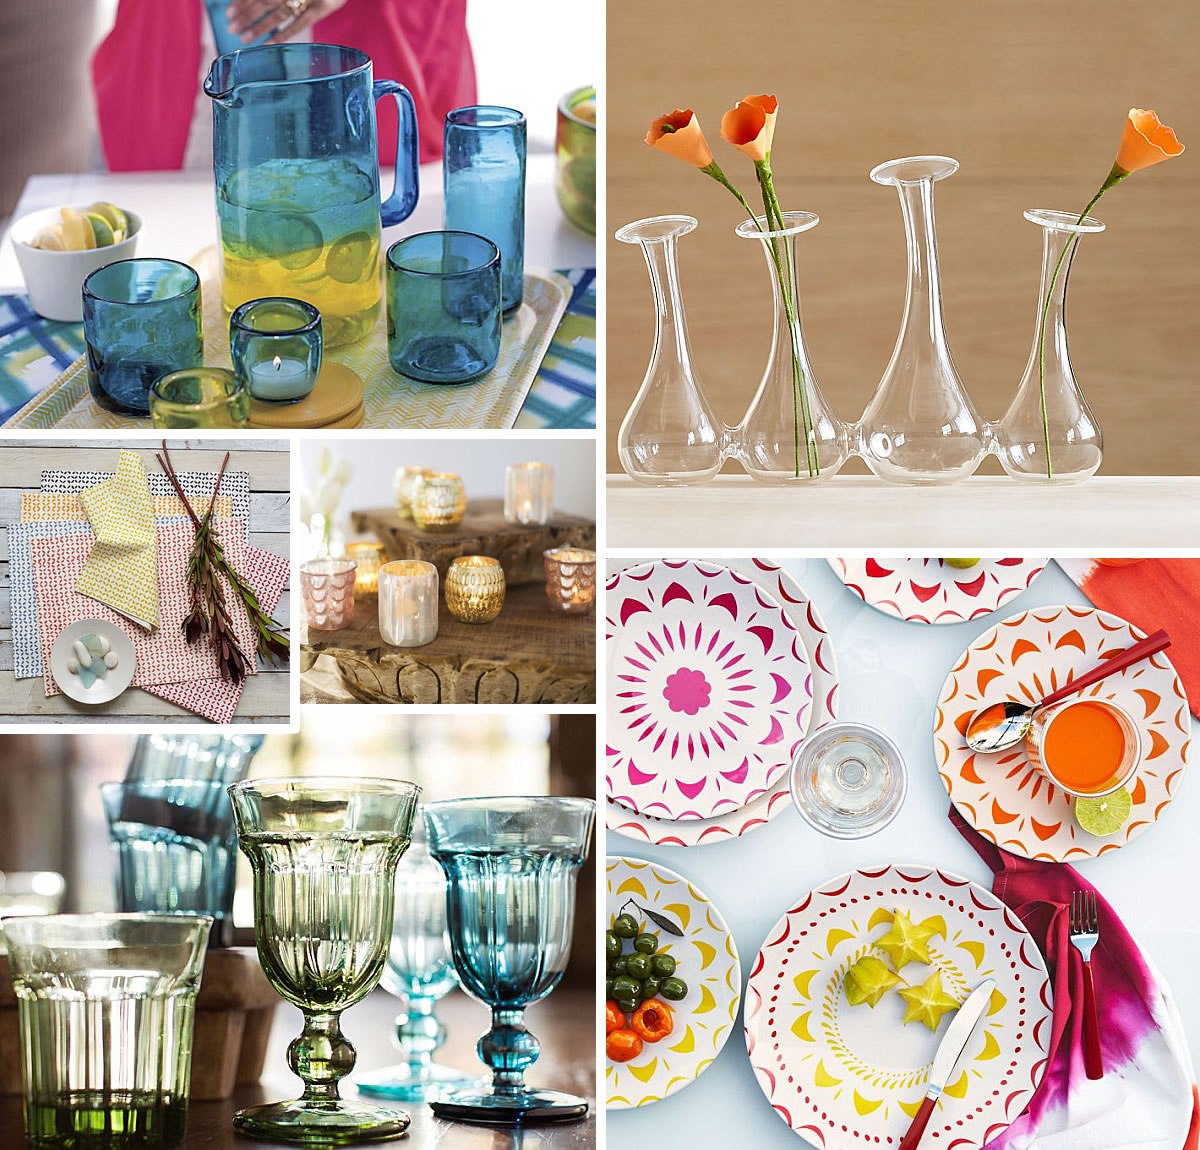 18 Spring Decor Ideas: Easter Decor Ideas & Inspiration For A Beautiful Spring